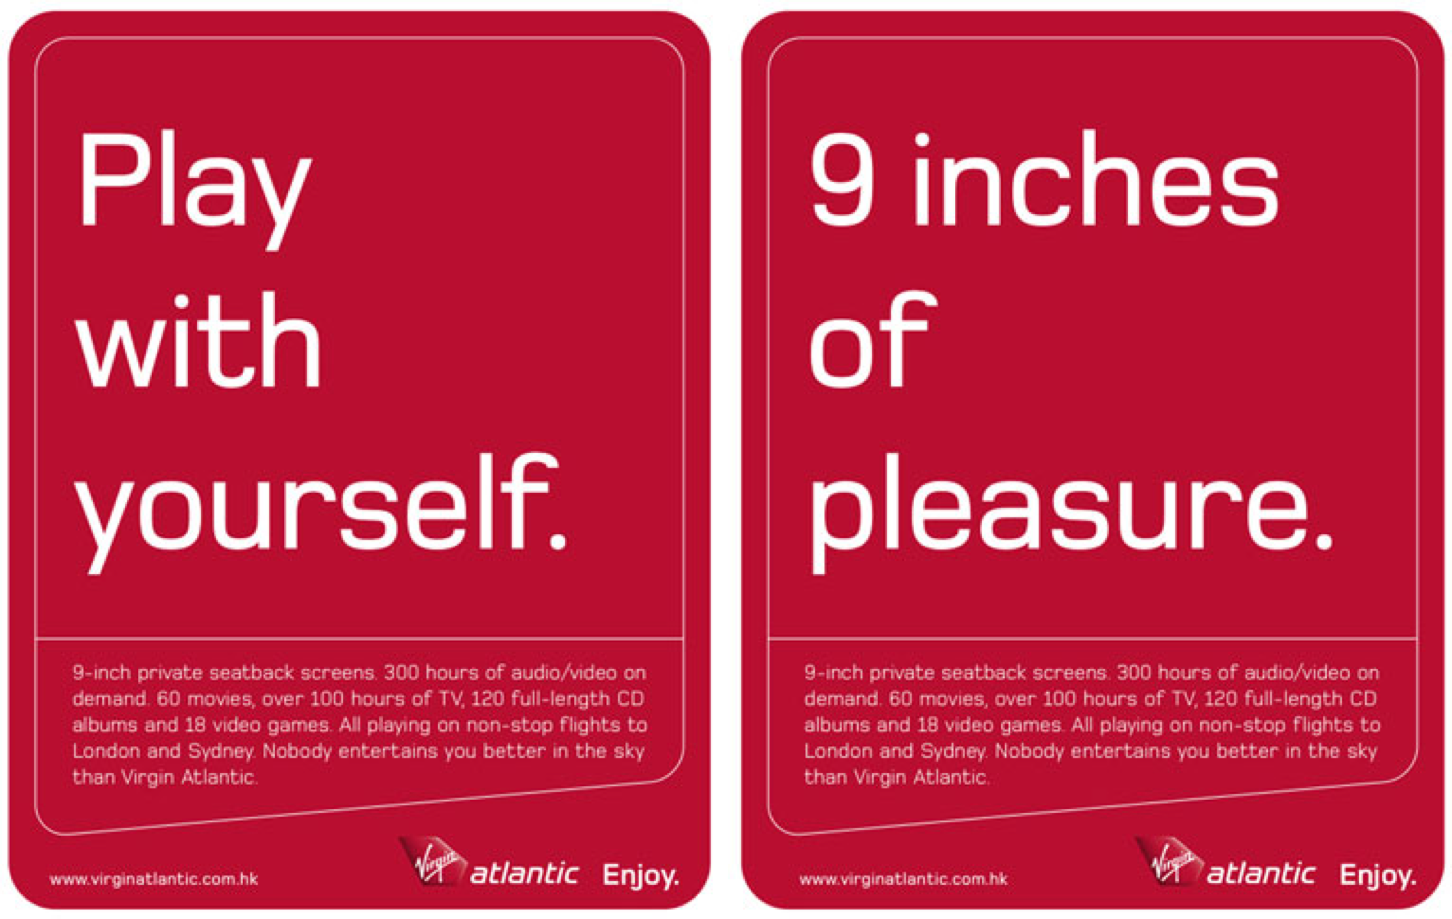 Saucy Virgin Atlantic ads saying '9 inches of pleasure' and 'Play with yourself''